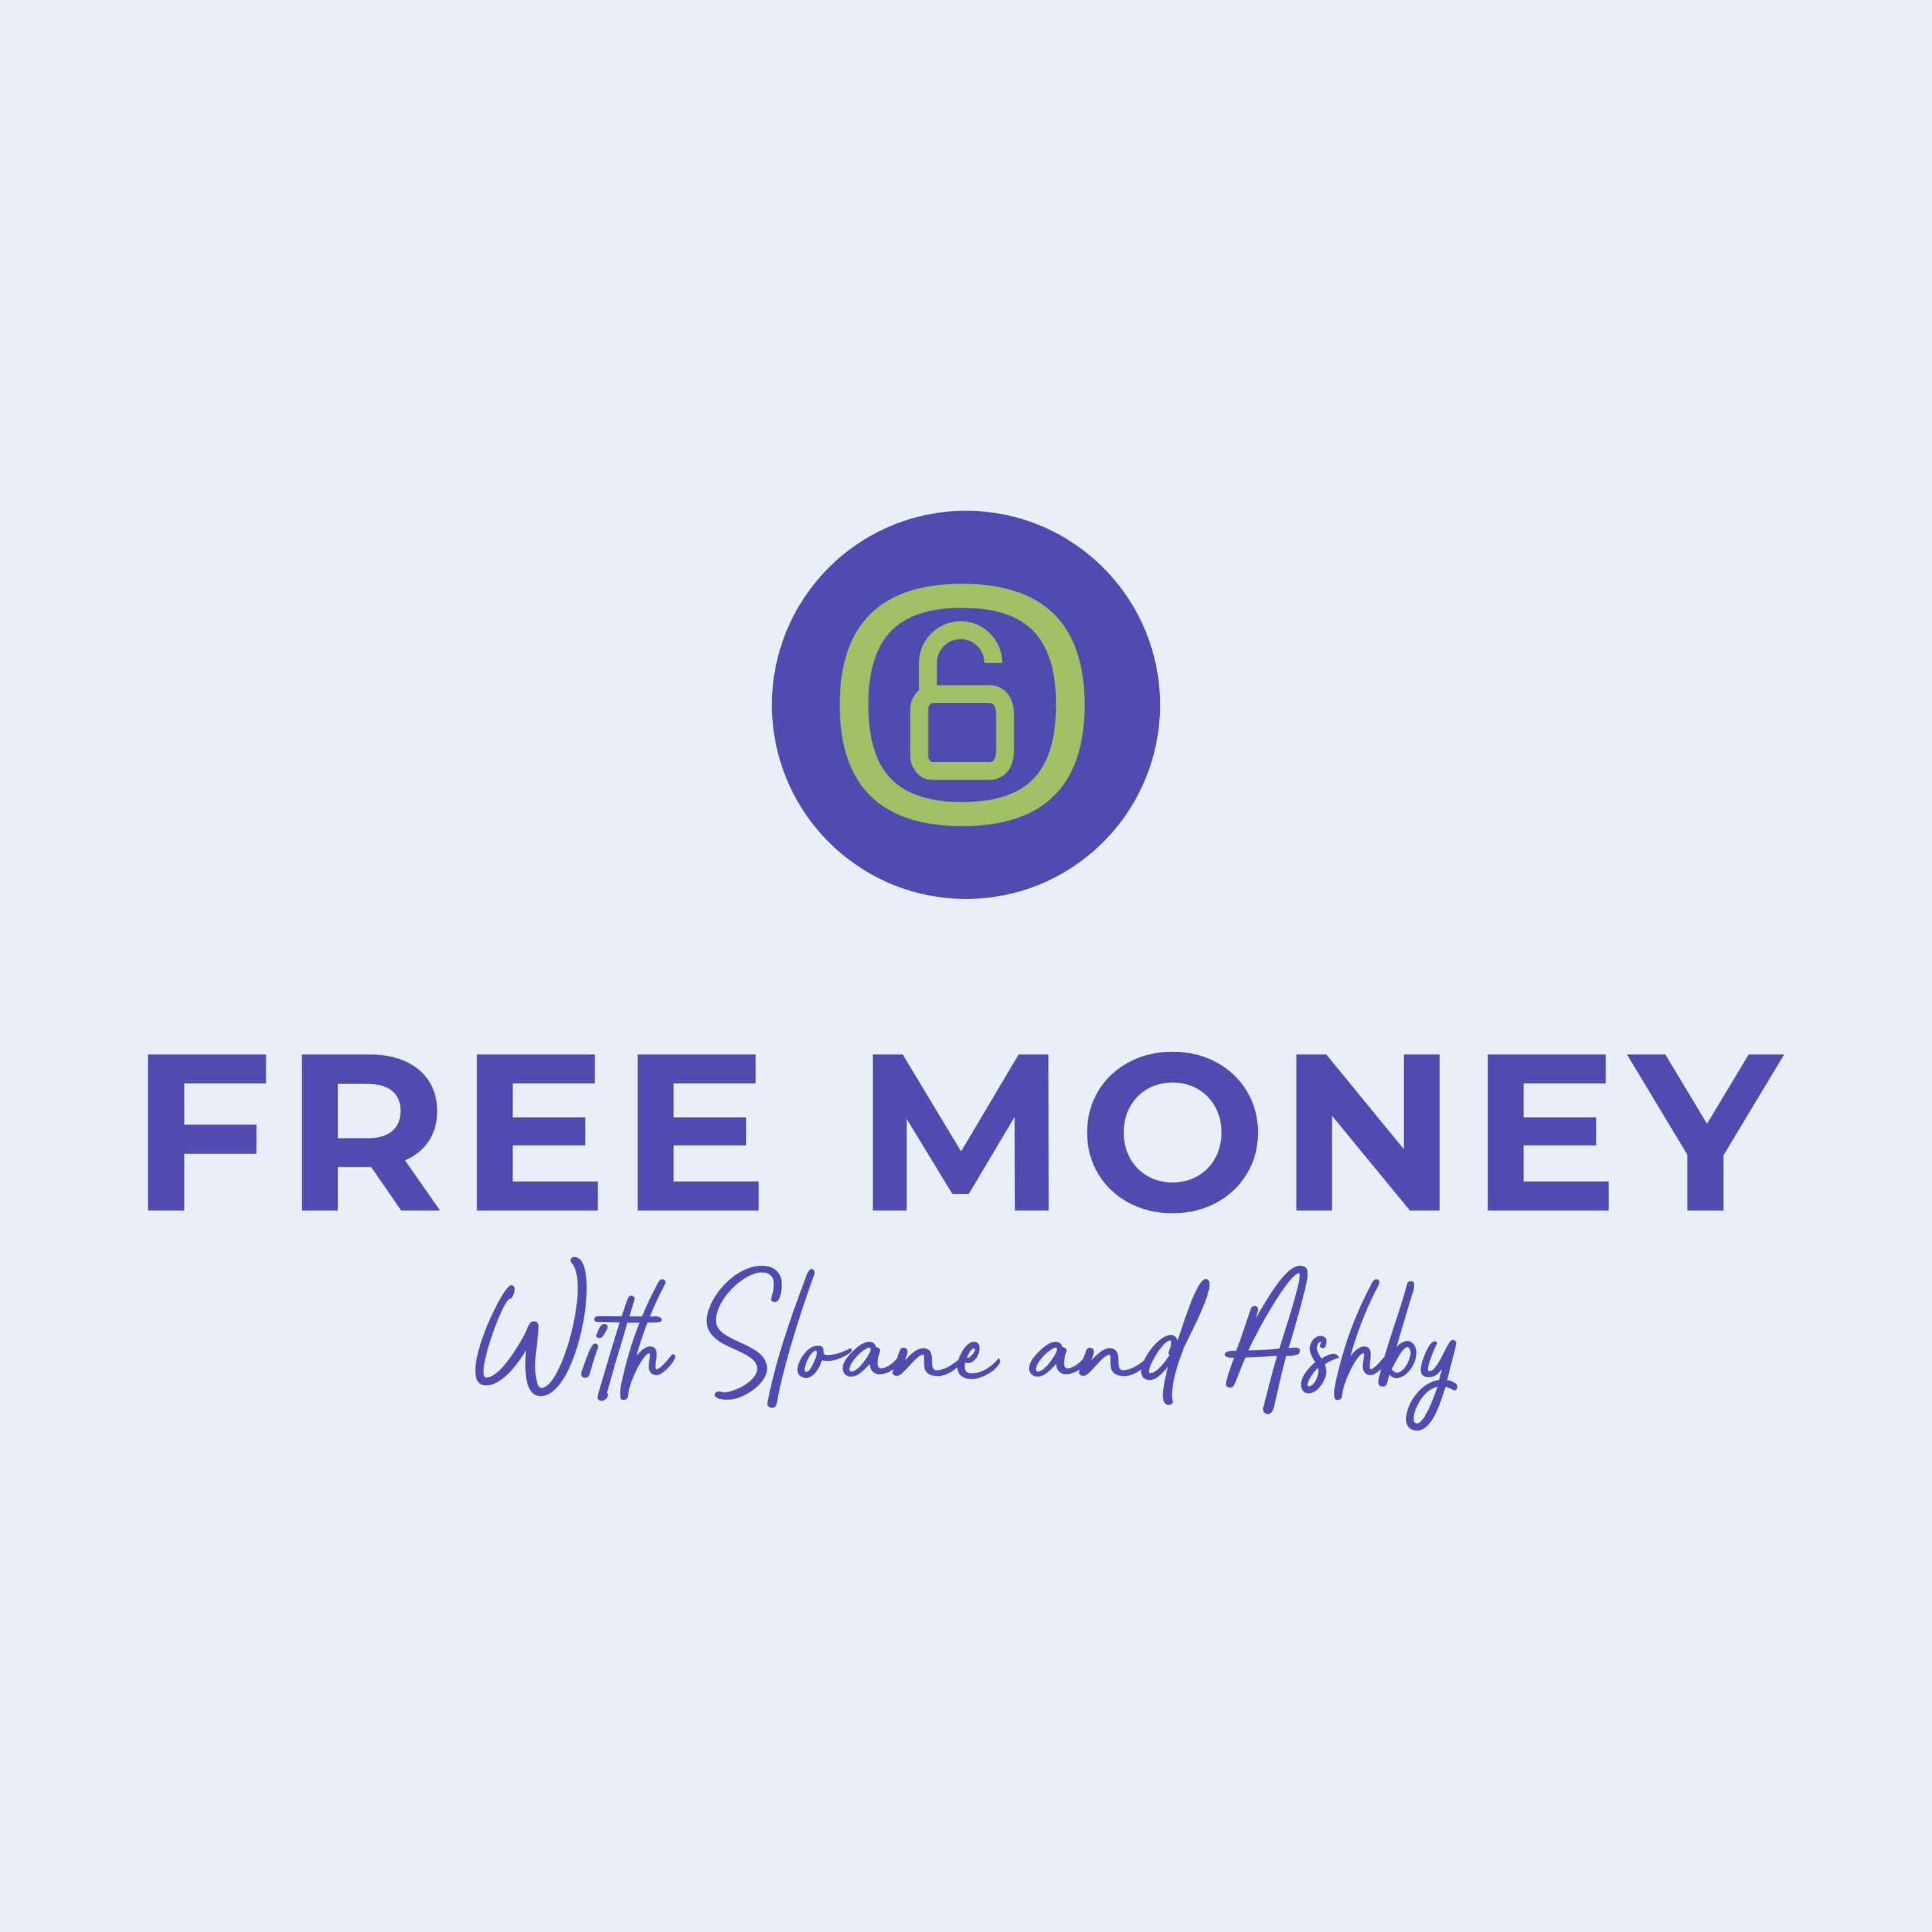 Artwork for podcast Free Money with Sloane and Ashby